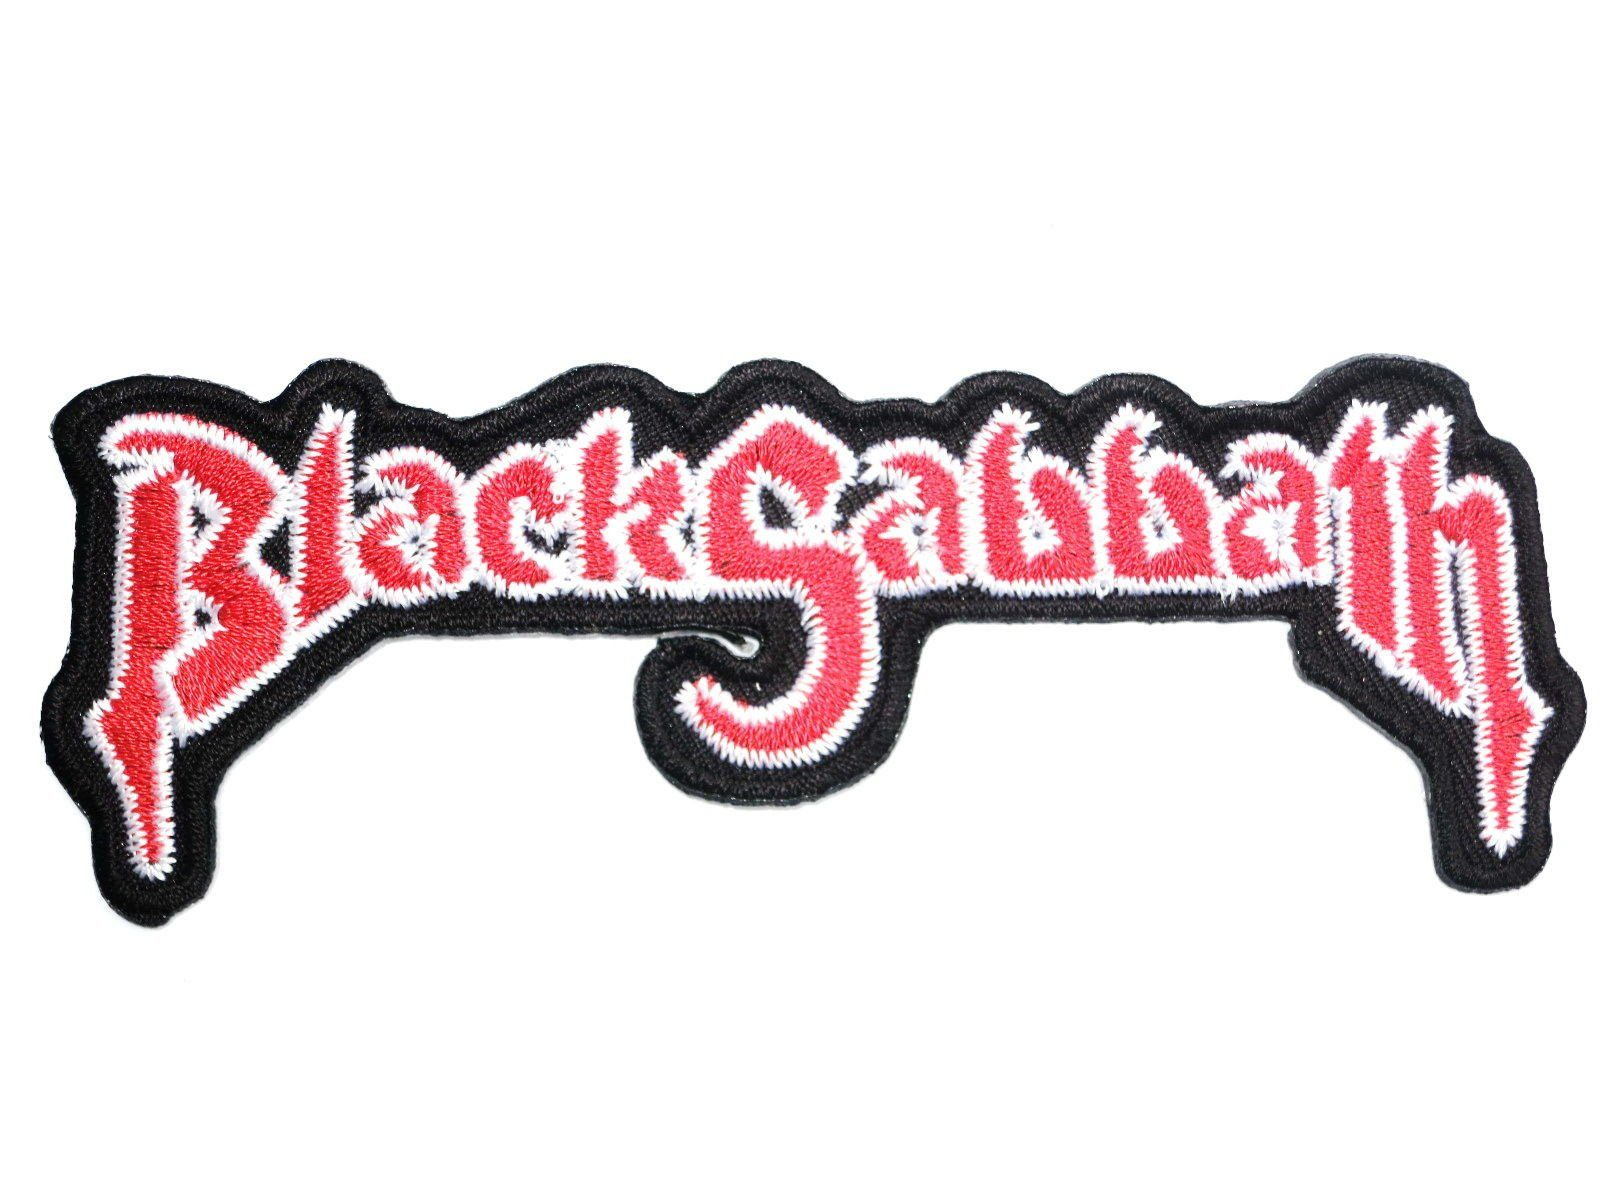 "BLACK SABBATH Retro Logo Iron On Embroidered Patch 4.5""/11.5cm - A Patch E Store"